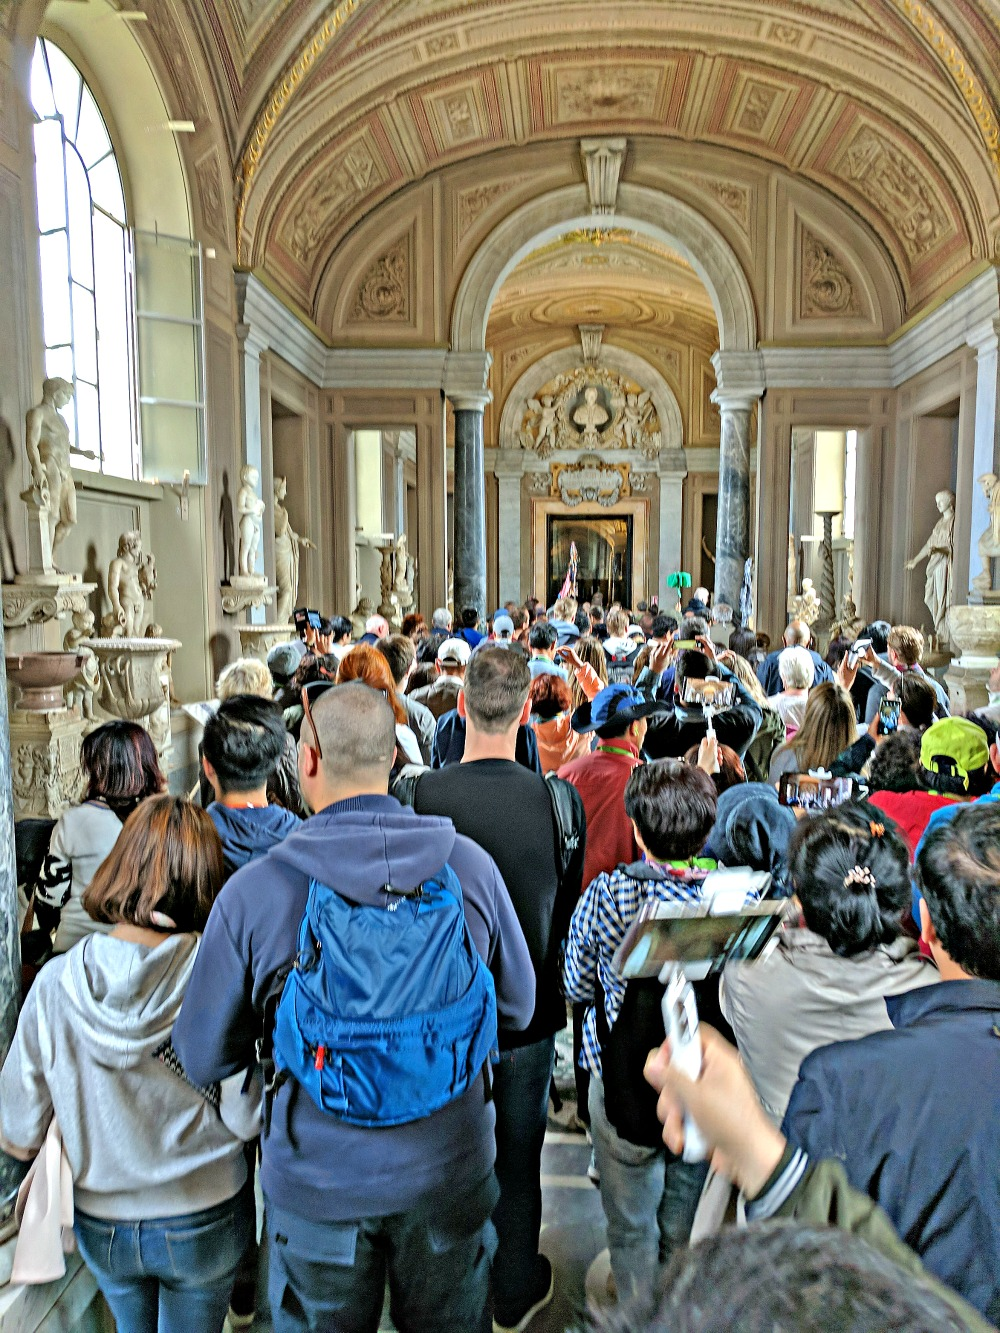 Crowds at The Vatican Museum.